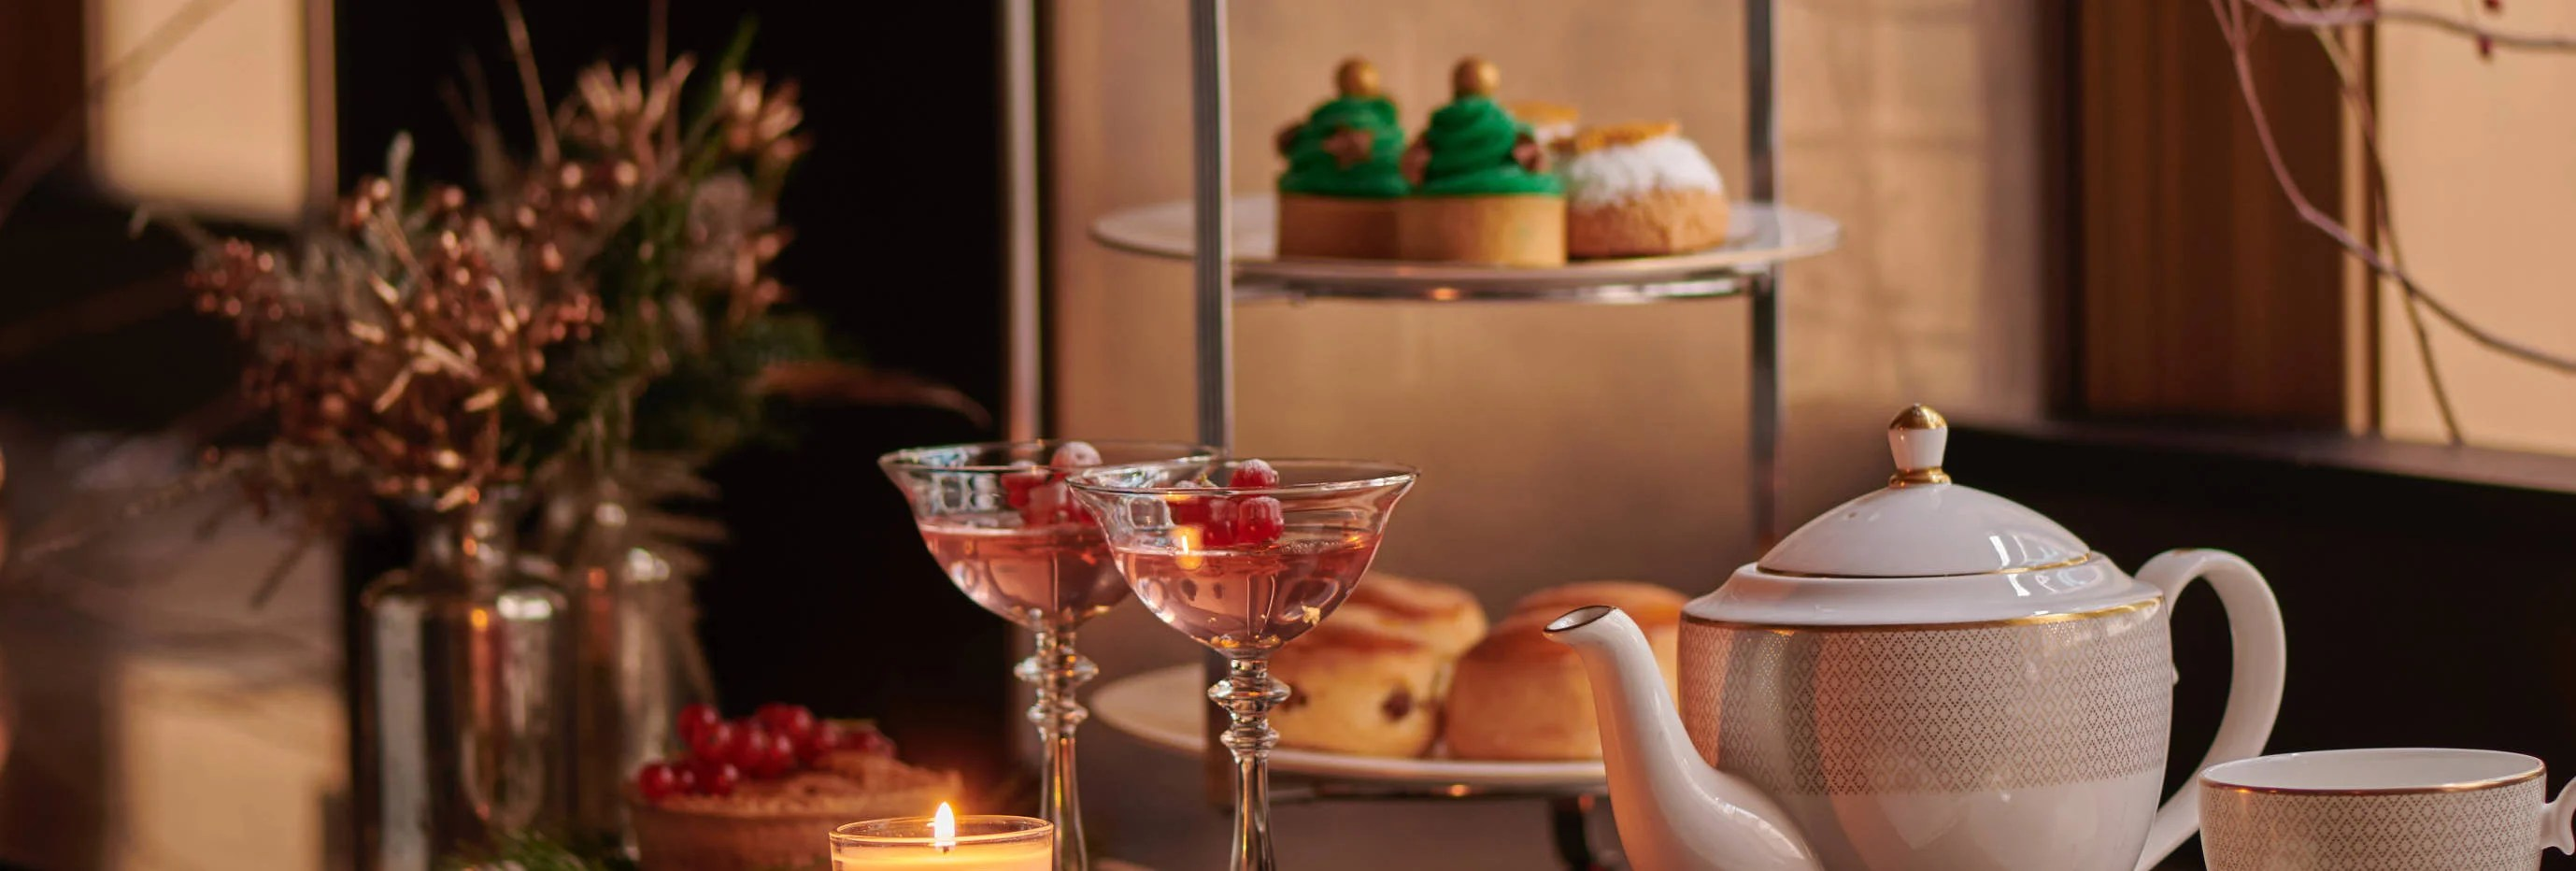 12 festive English afternoon teas Yule love